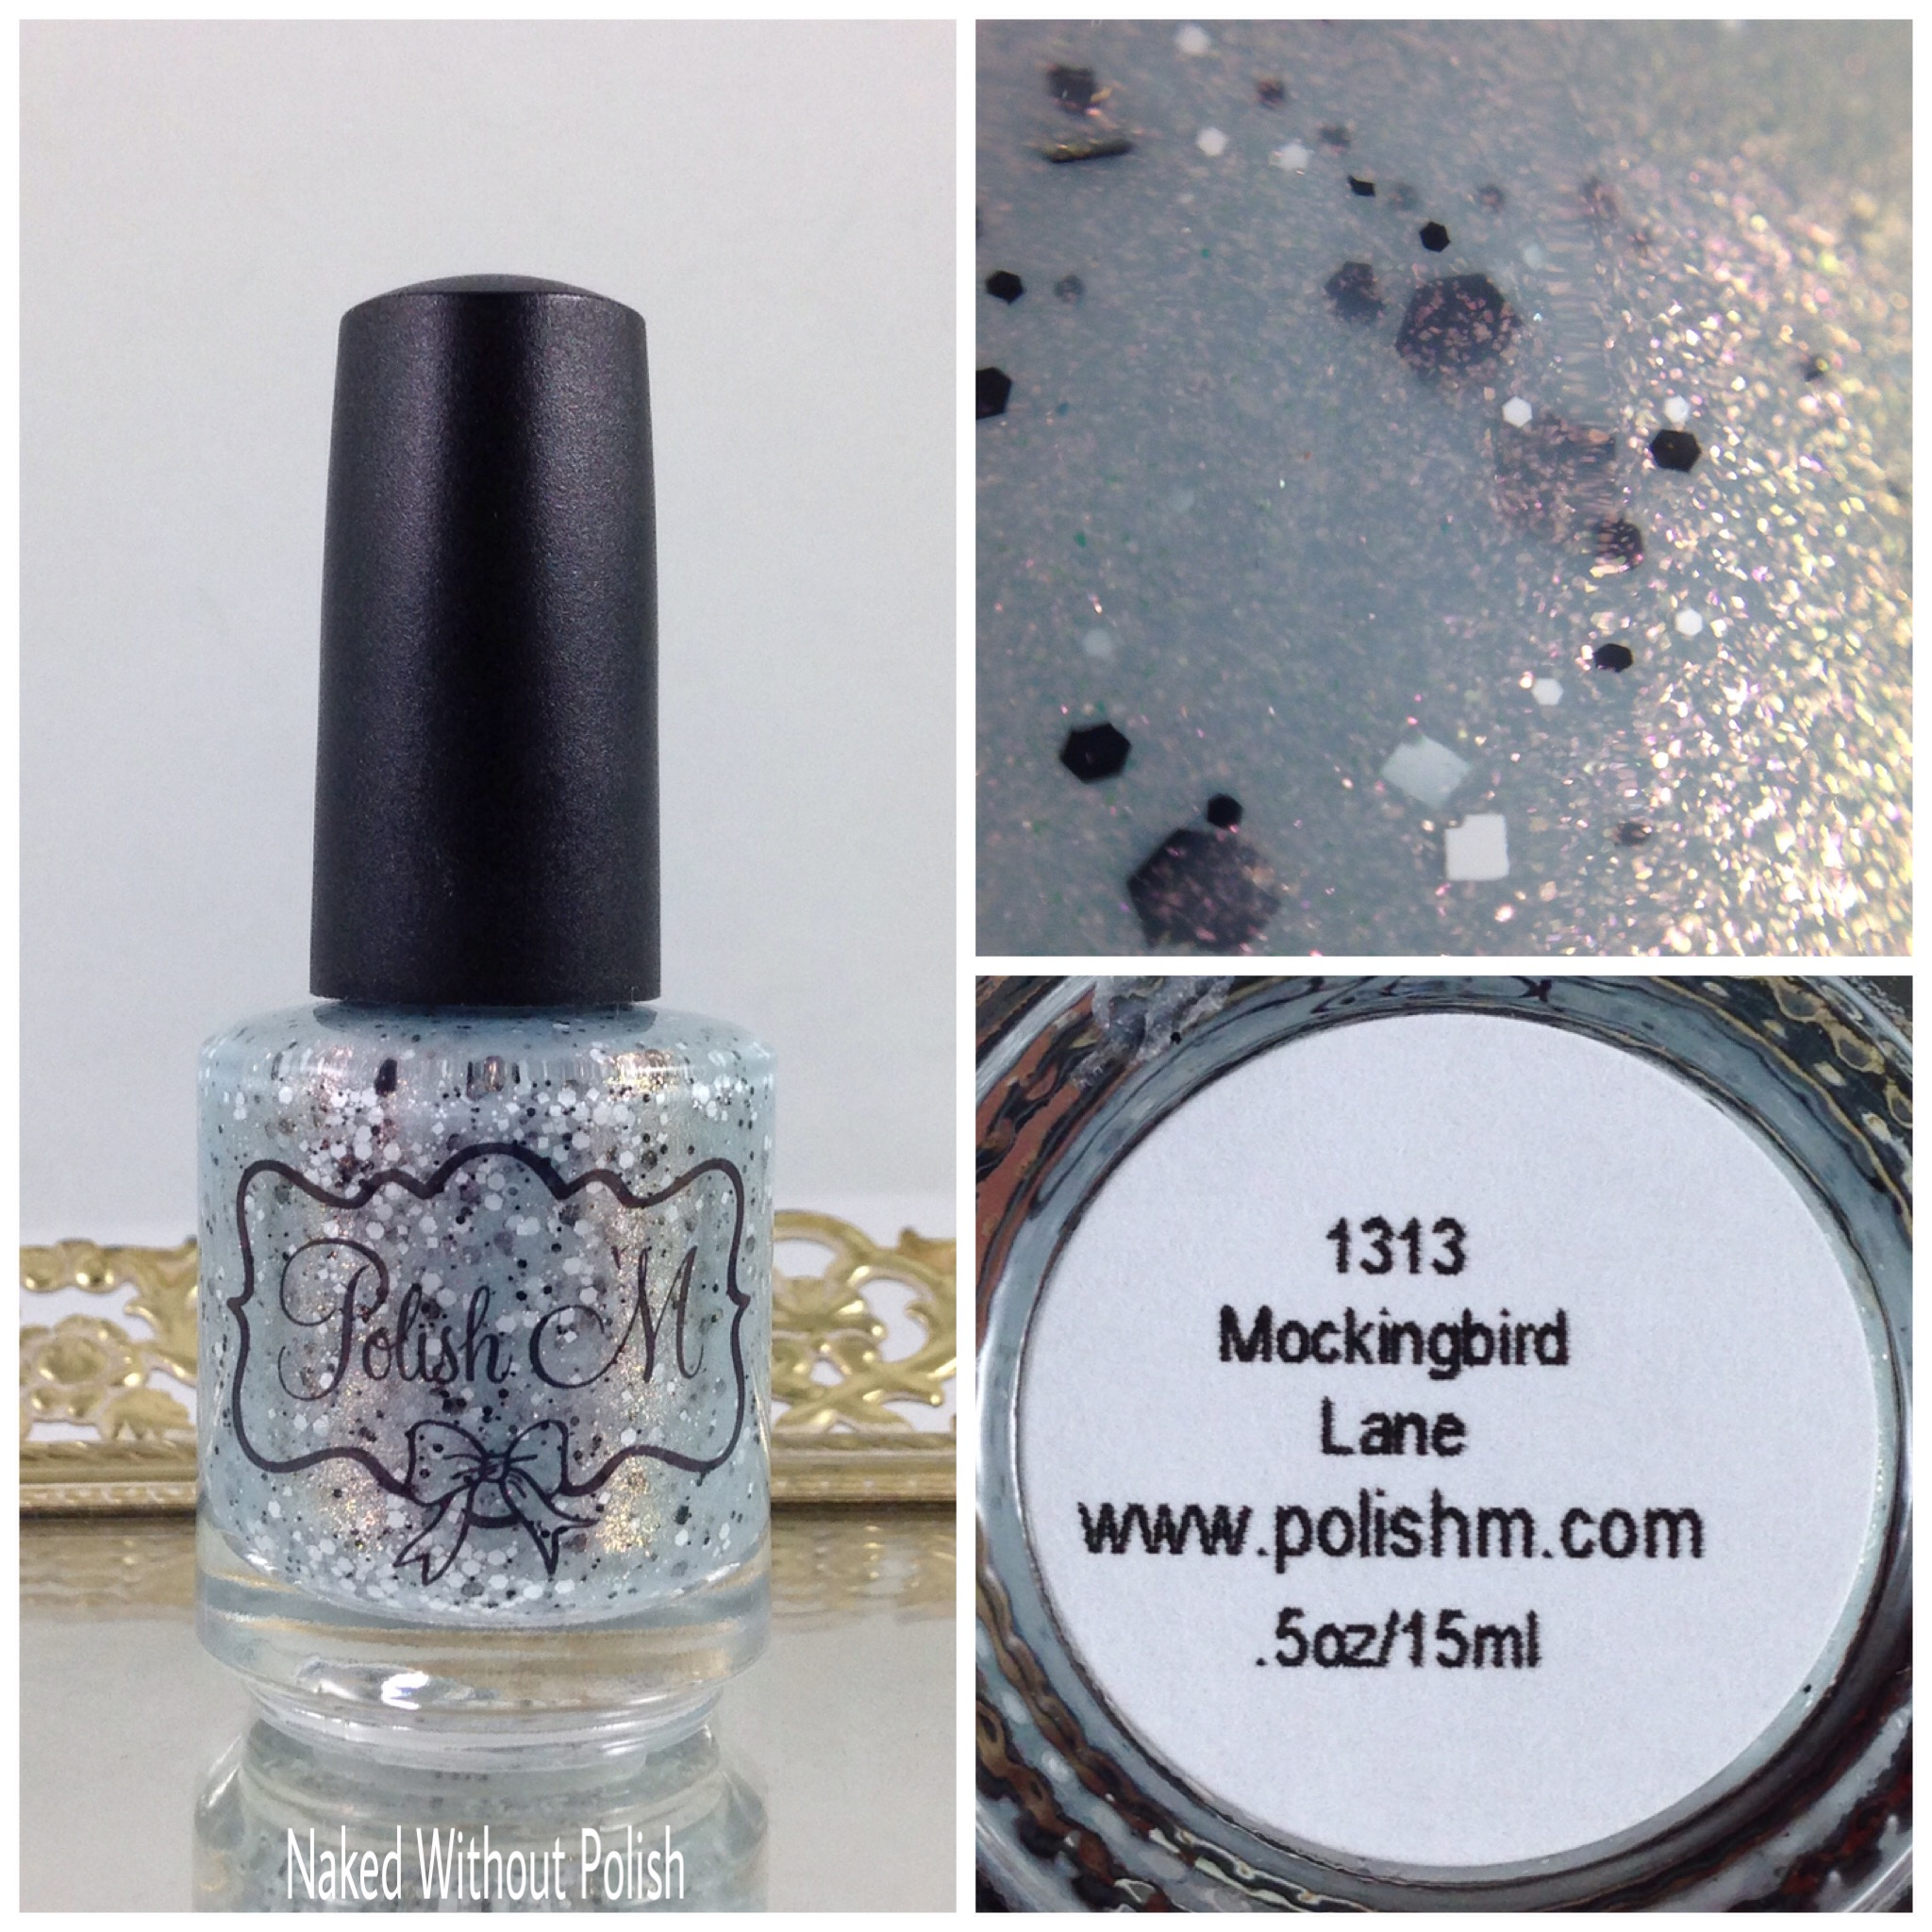 Polish-Pickup-Polish-M-1313-Mockingbird-Lane-1